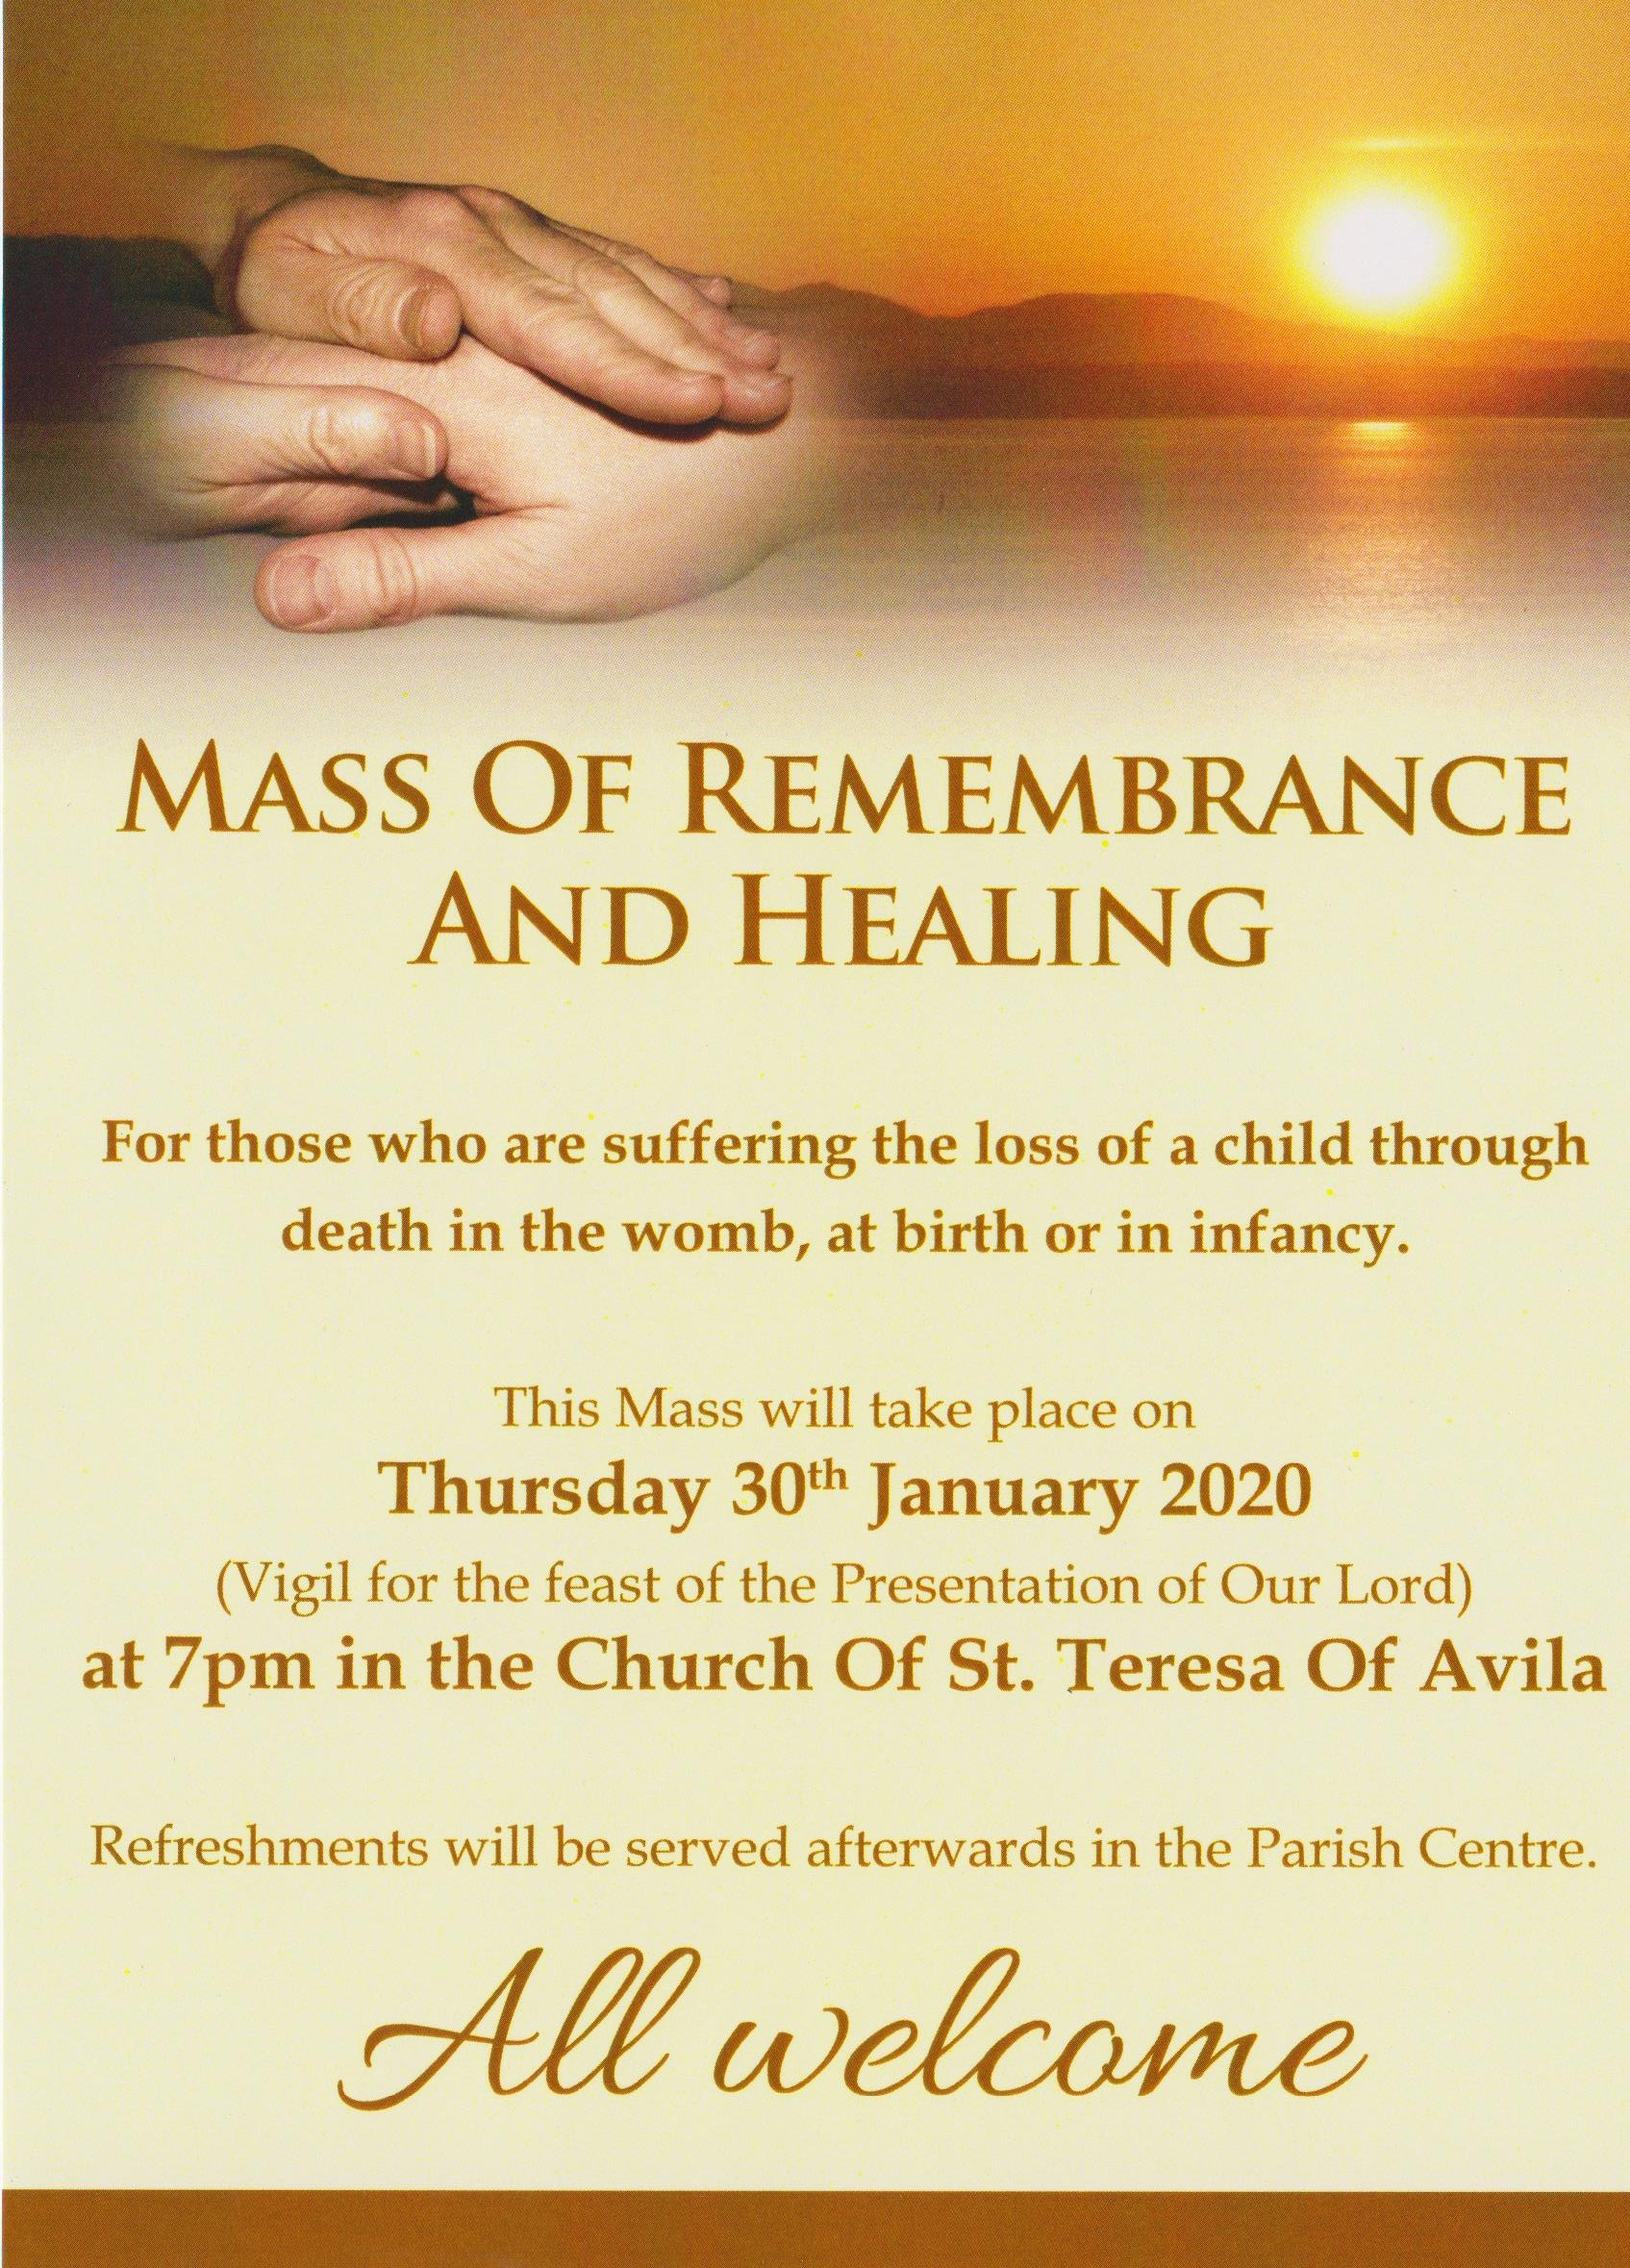 Mass of Remembrance and Healing @ Church of St. Teresa of Avila